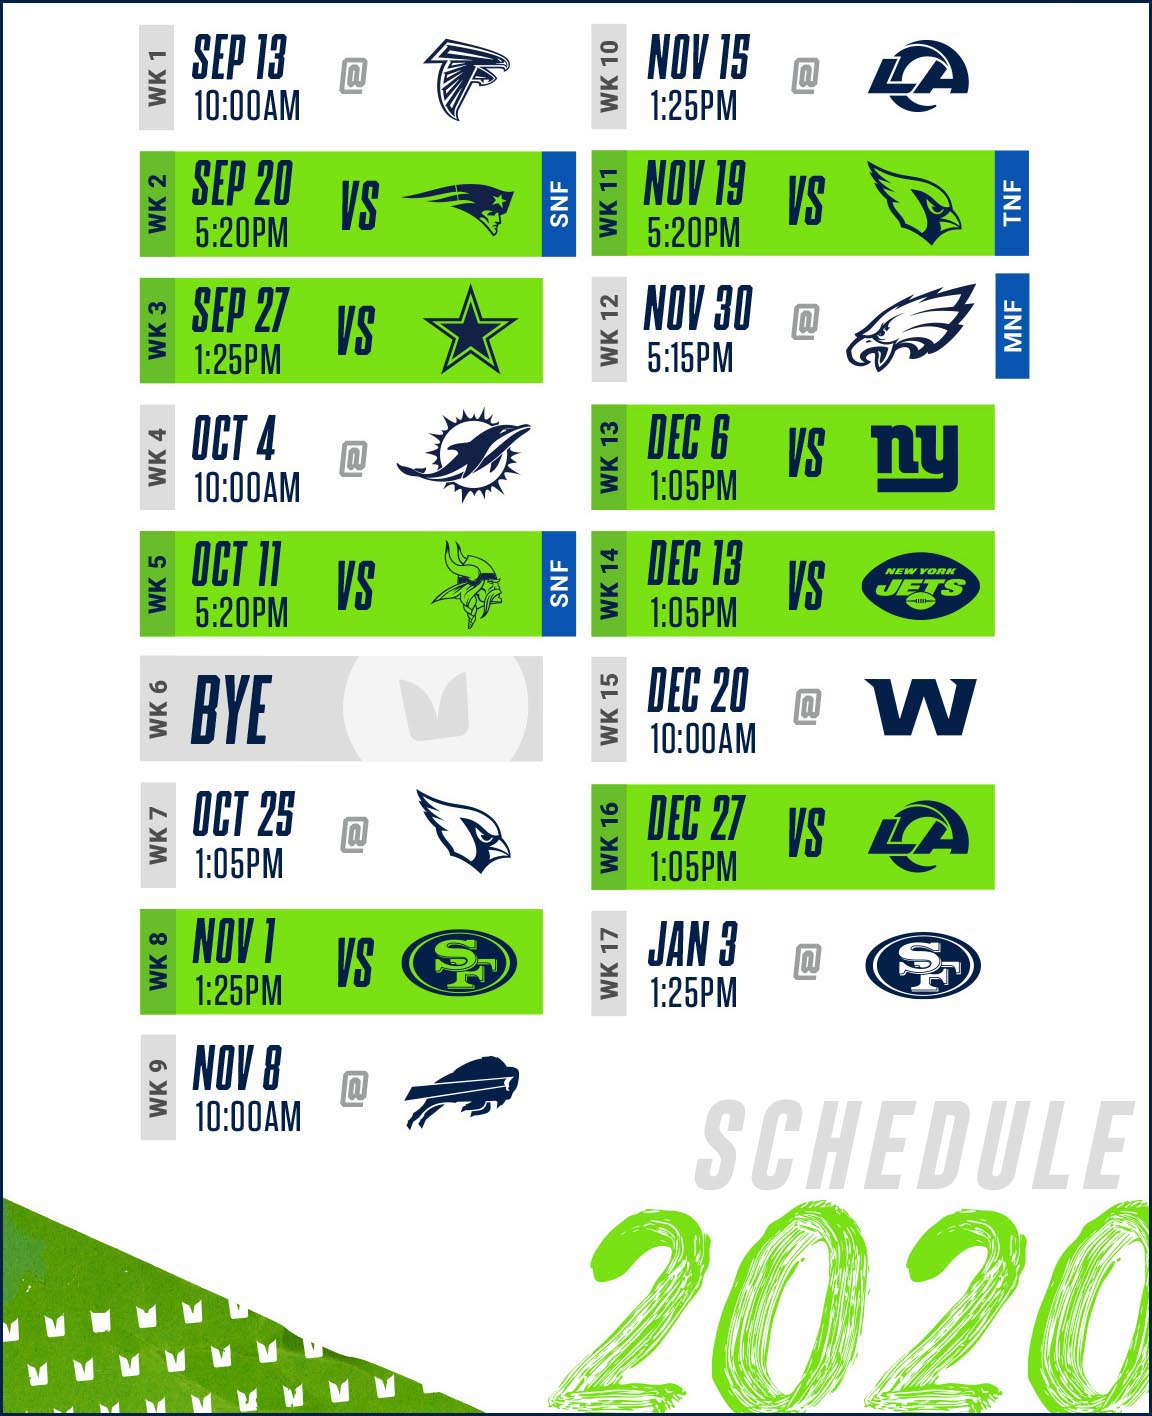 abbey road taphouse seattle seahawks schedule 2020